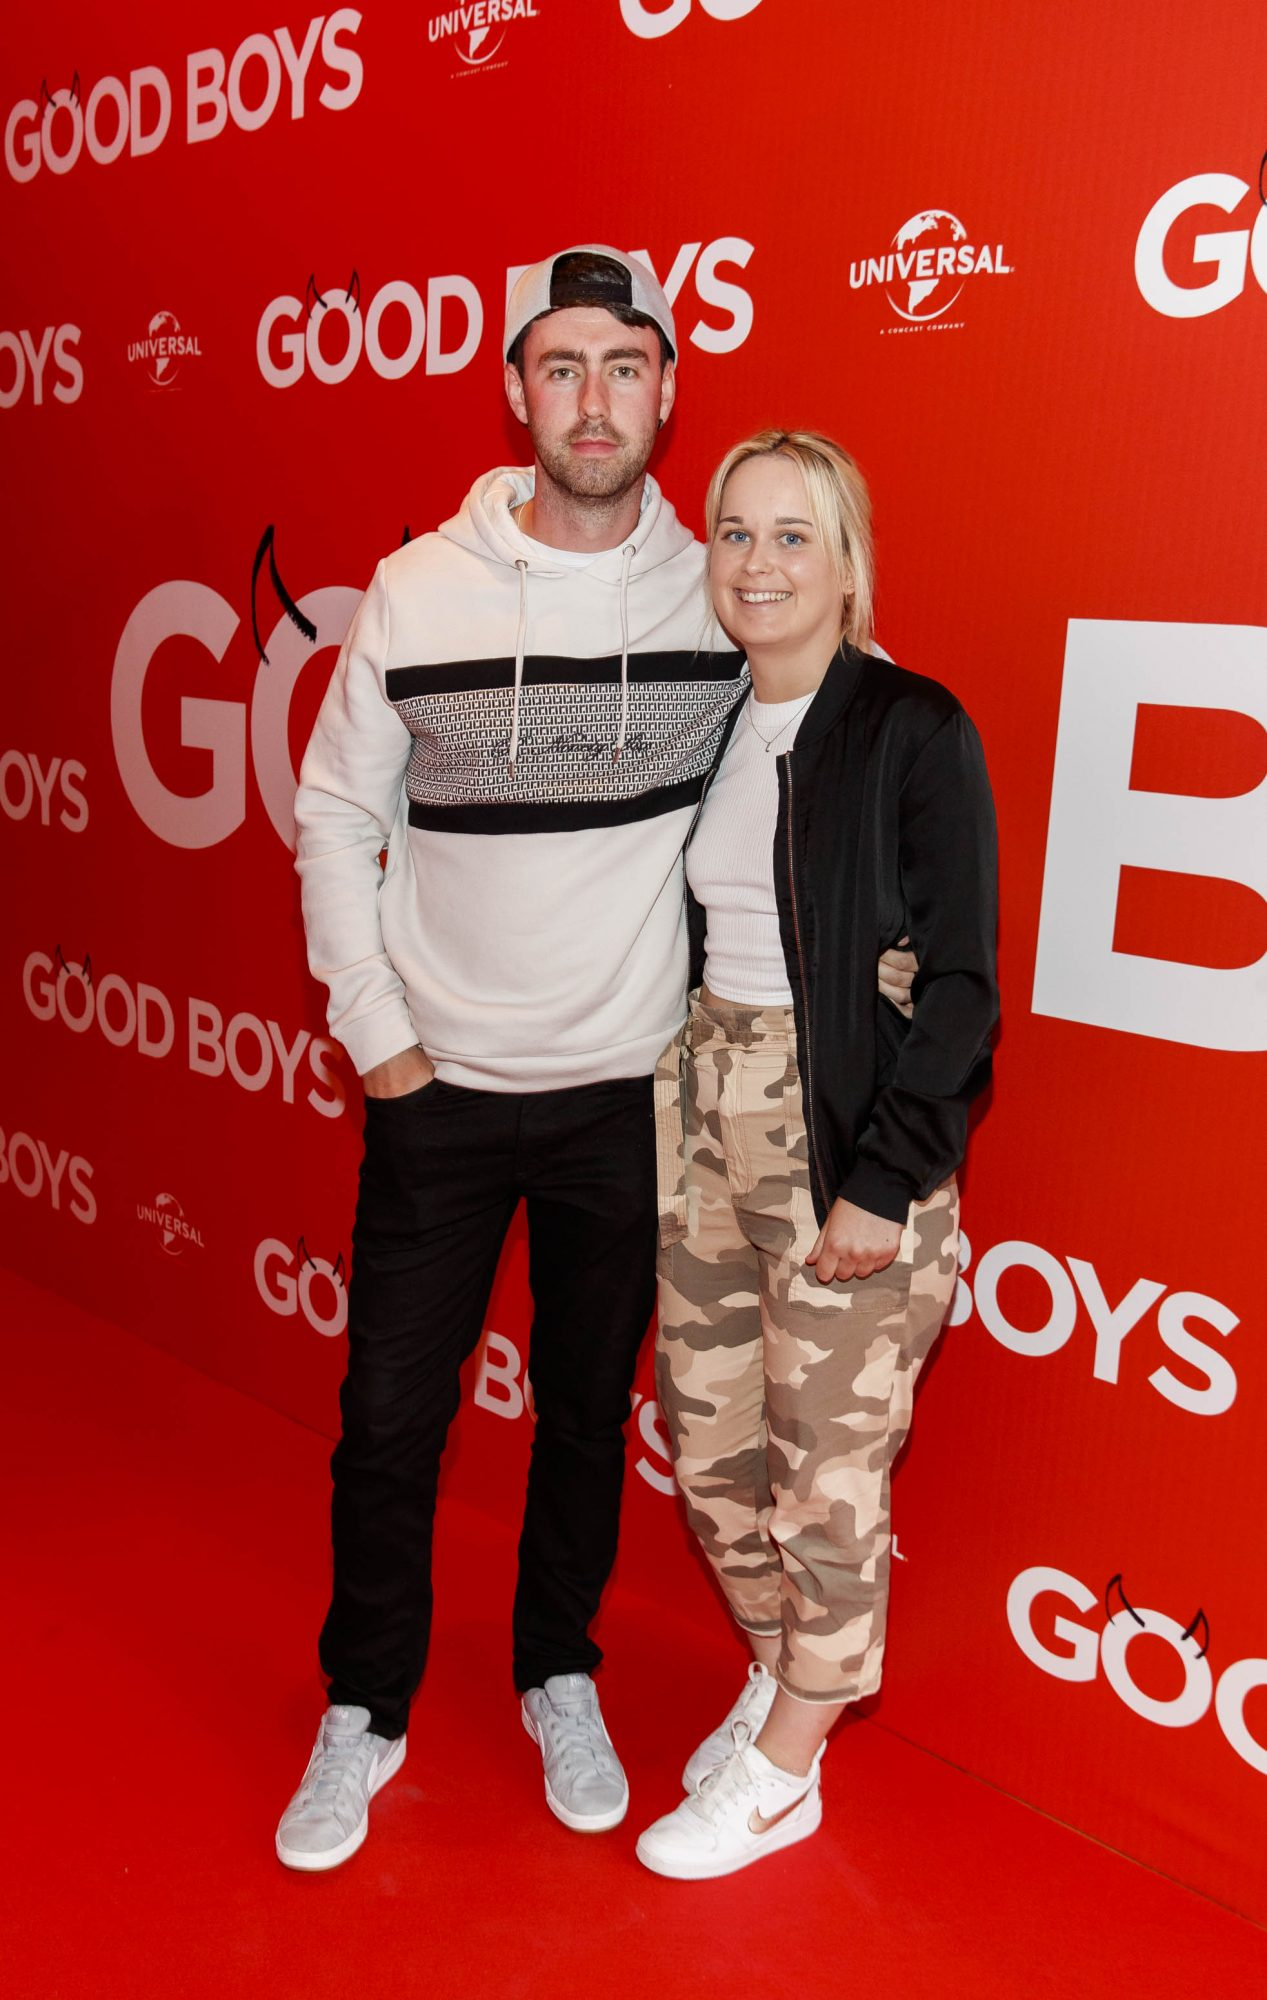 Ian Adams and Gemma Kelly pictured at a special preview screening of Good Boys at the Light House Cinema, Dublin. Picture: Andres Poveda